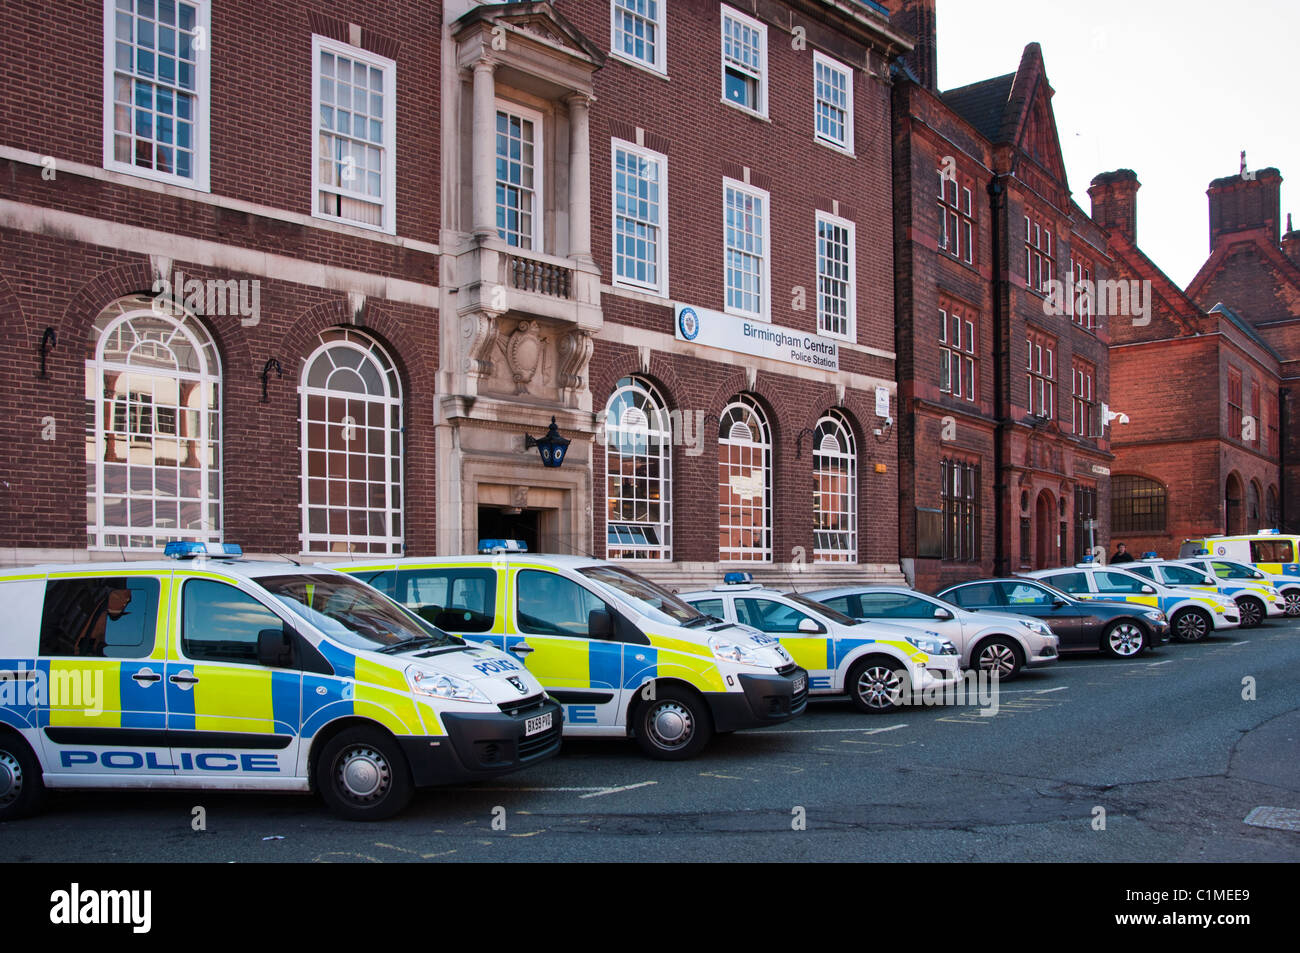 Birmingham Police station. West Midlands. England. Stock Photo